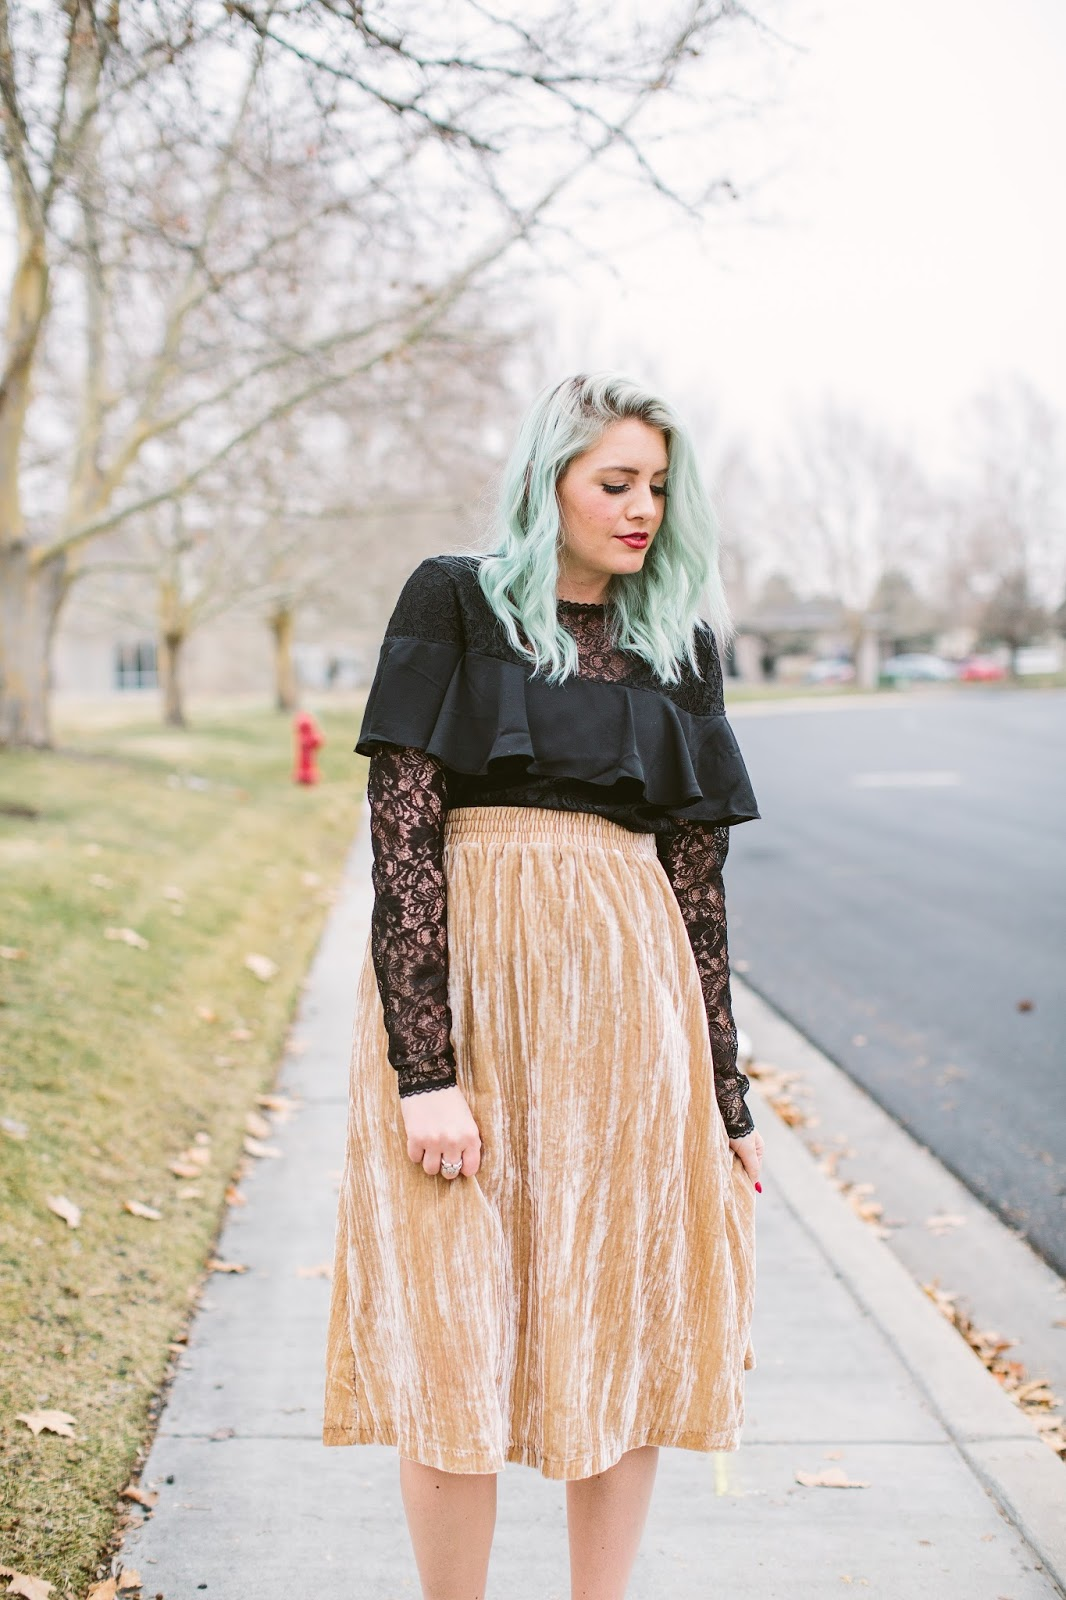 Black Lace Top, Velvet Skirt, Tall Girl Style